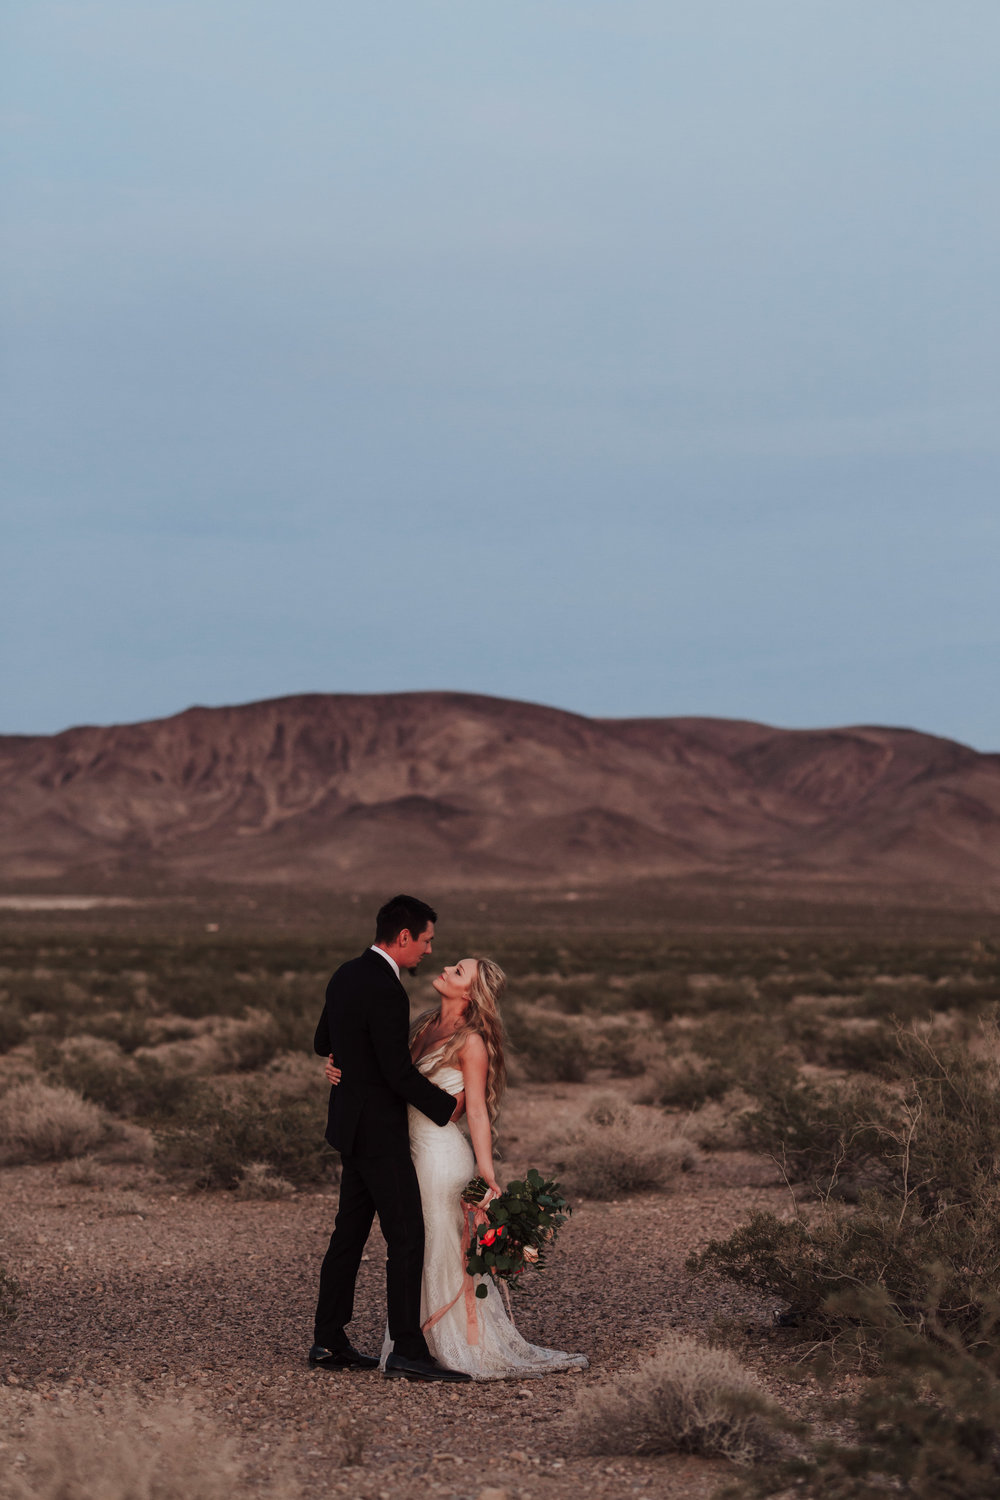 Rustic Bloom Photography | Las Vegas Desert Elopement